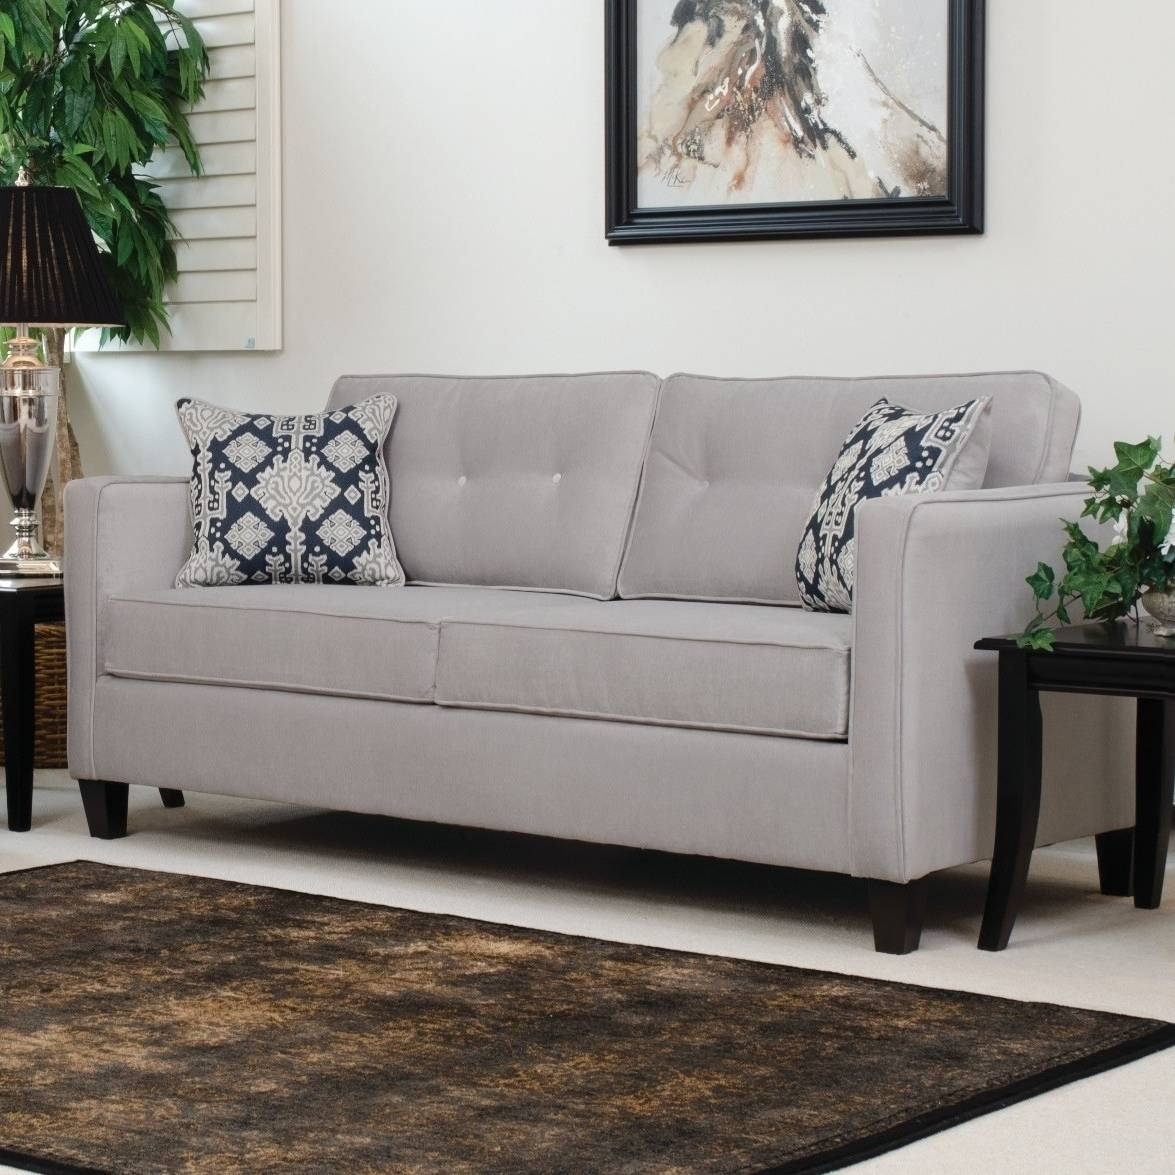 Braxton Sectional Sofa With Concept Image 26404 | Kengire with Braxton Sectional Sofa (Image 7 of 30)